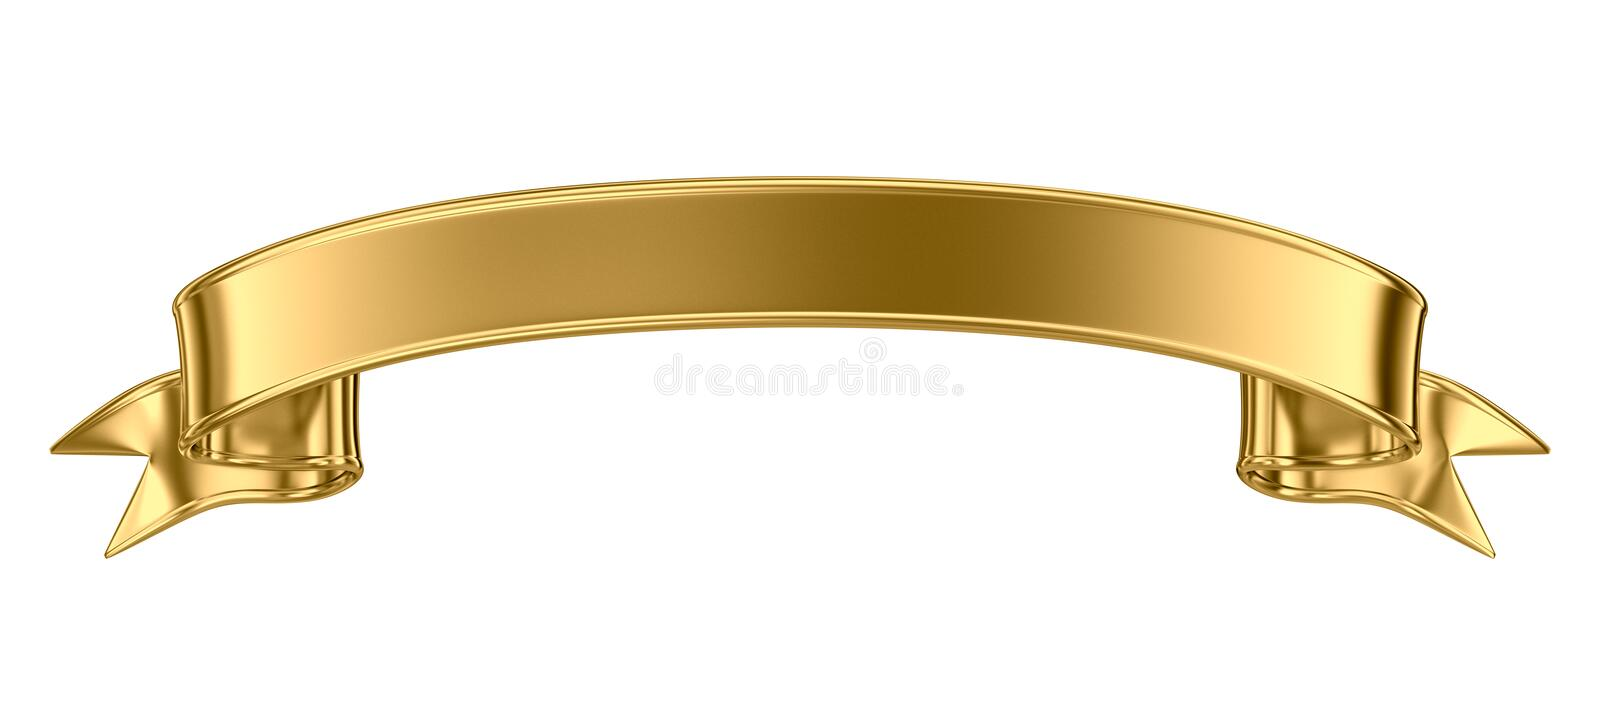 Gold Metal Banner royalty free illustration